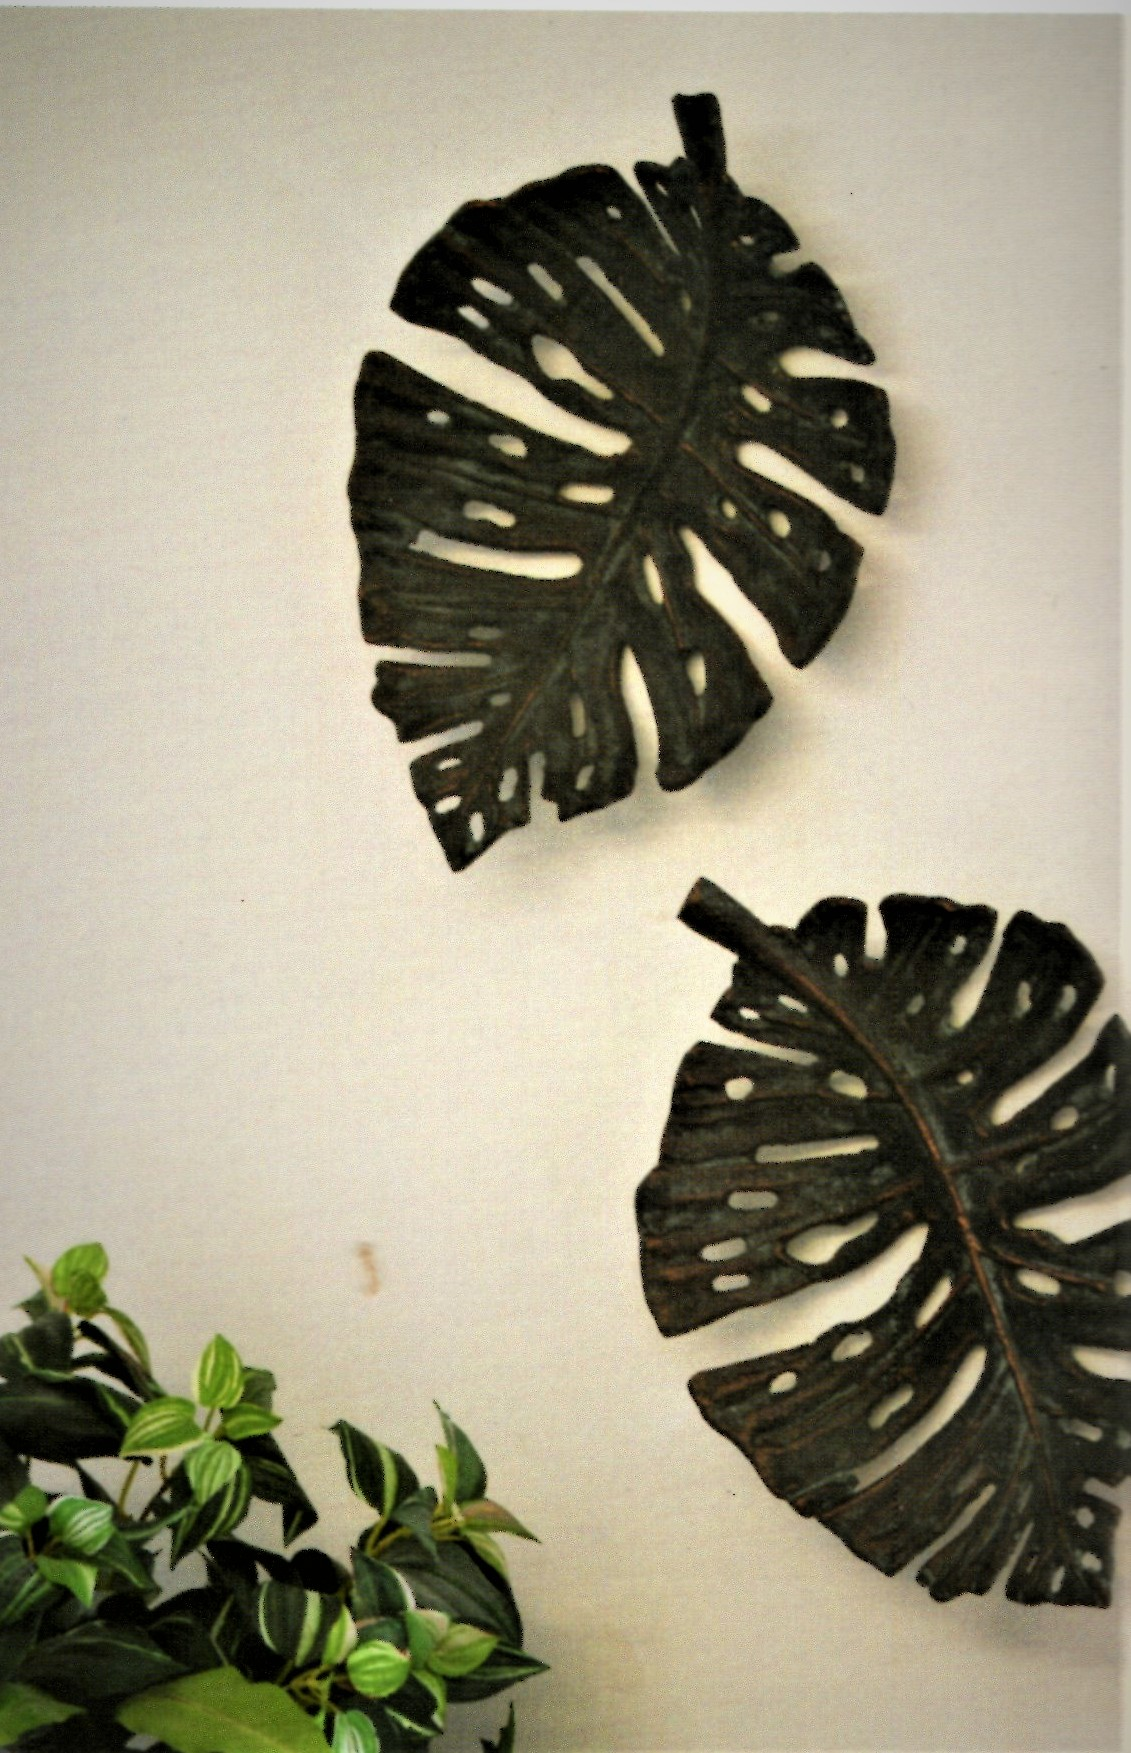 Palm leaf dish or wall art.